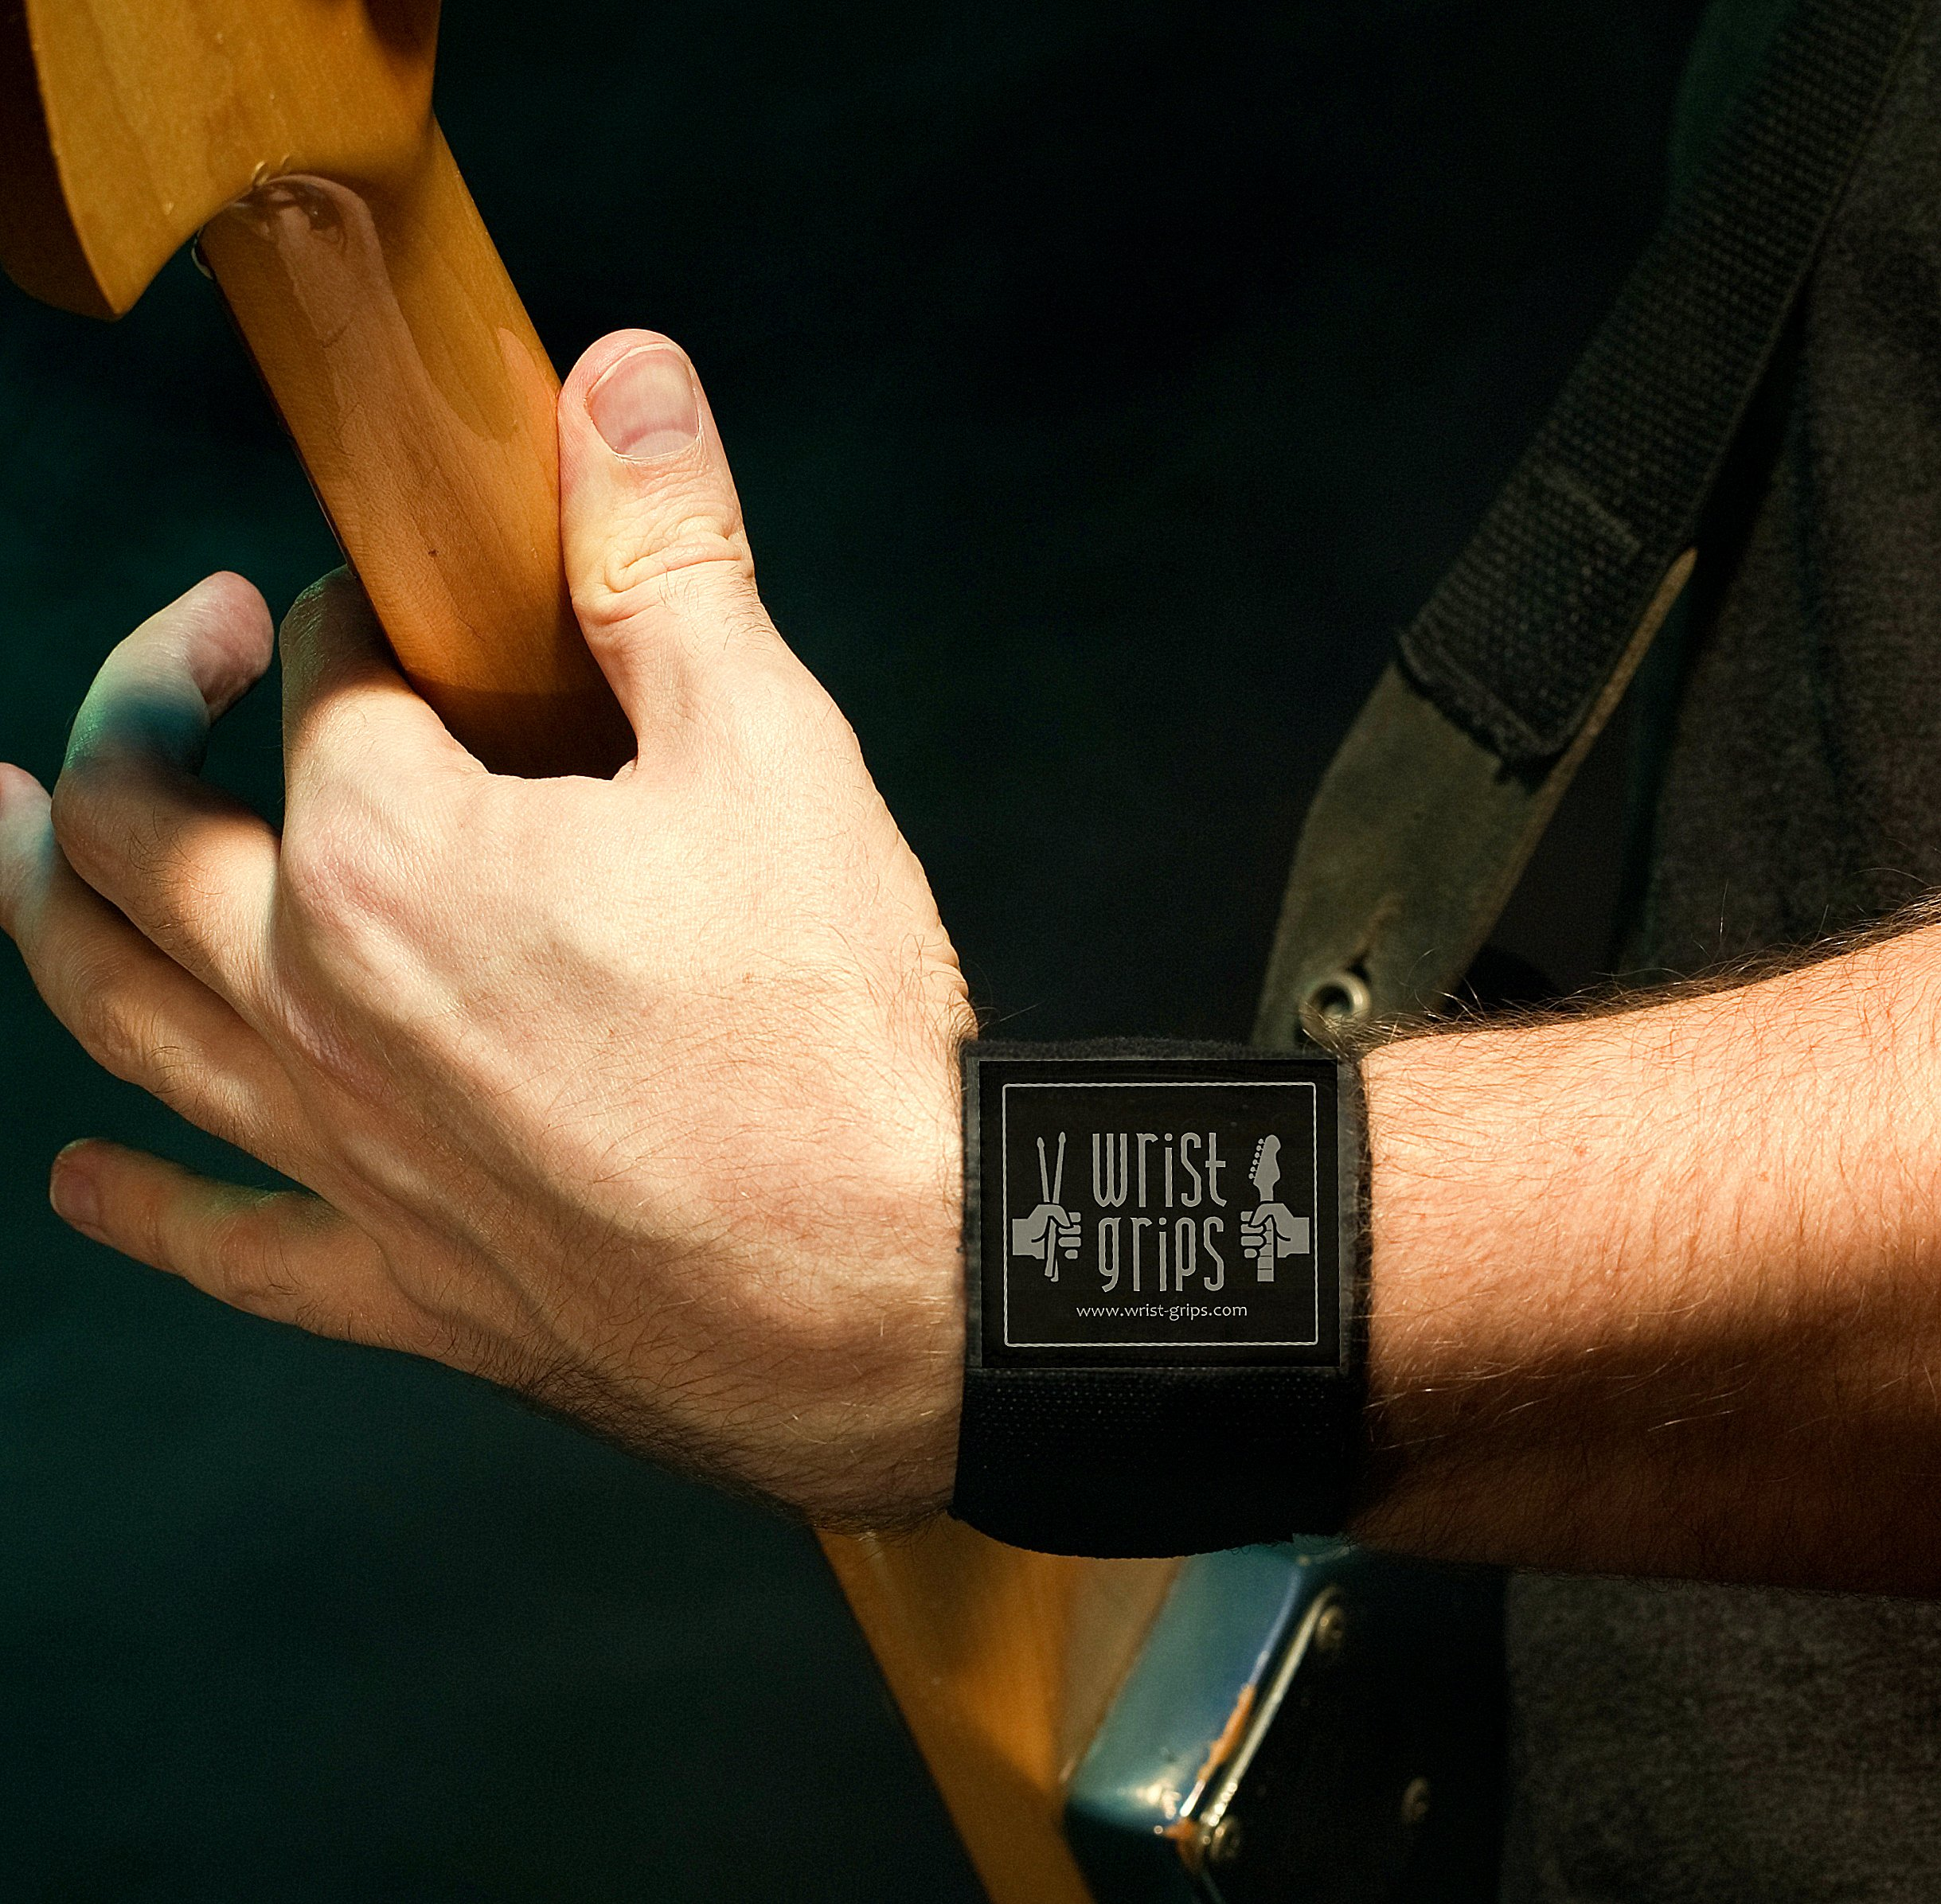 WristGrips Compression Wraps for Musicians   Carpal Tunnel, Tendonitis & Arthritis Releif by WristGrips